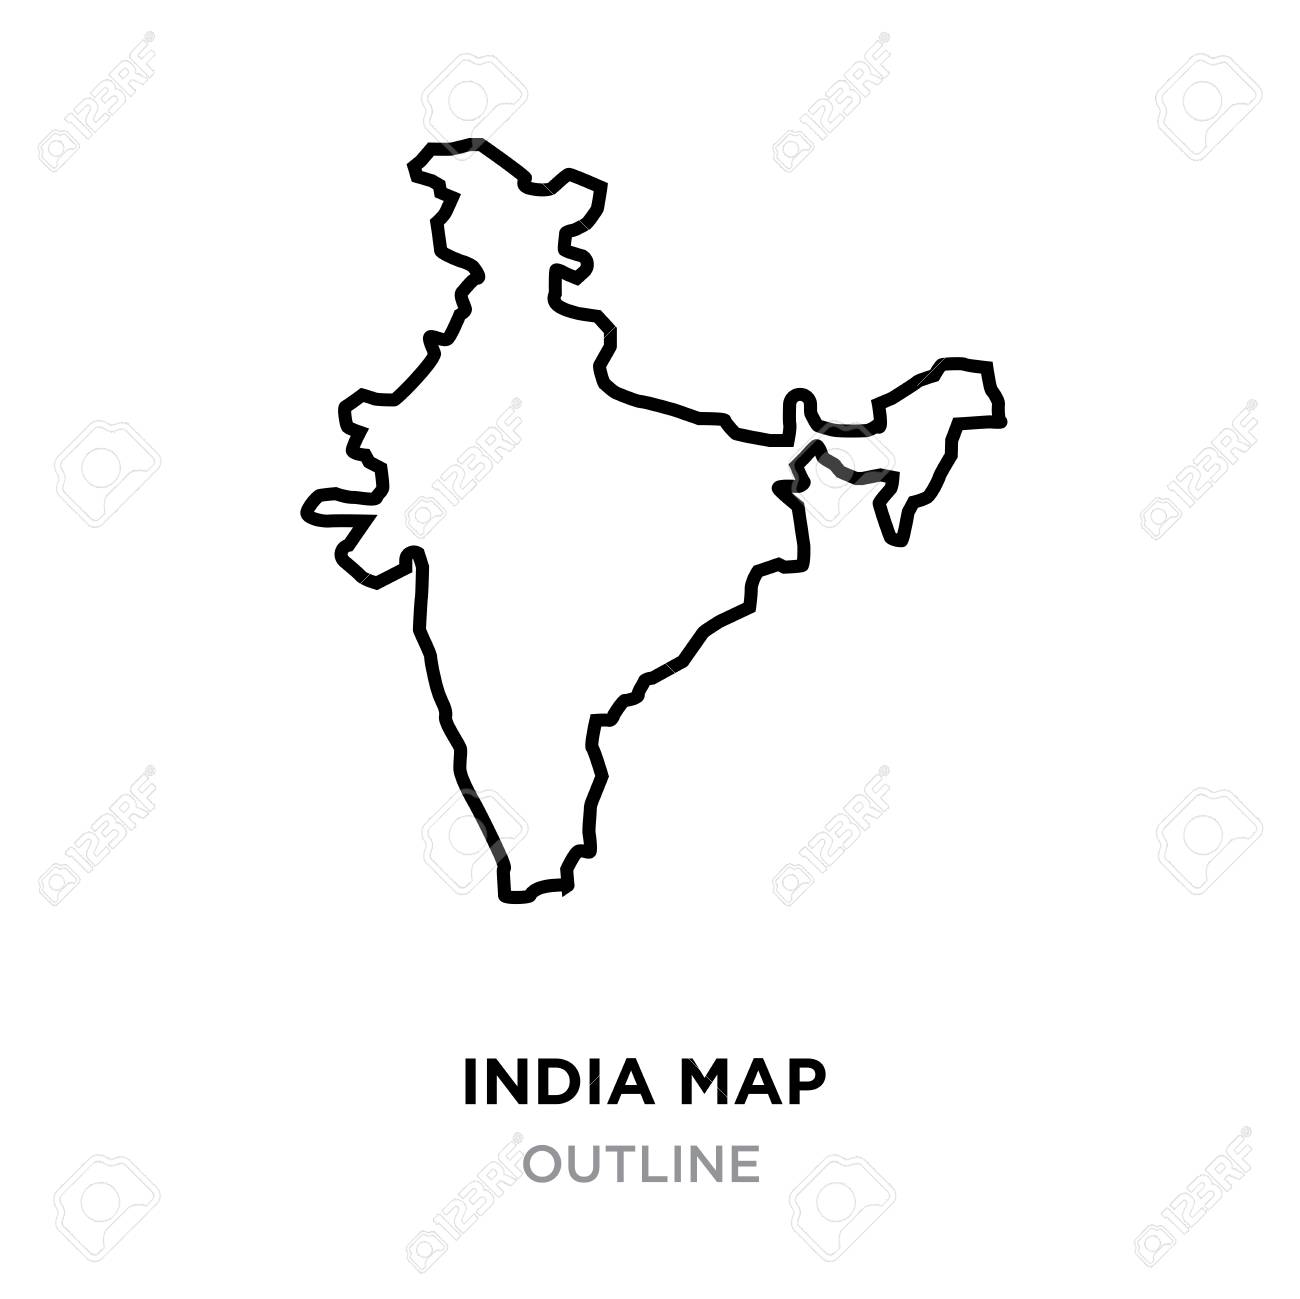 Indian Map Outline On White Background, Vector Illustration Royalty ...